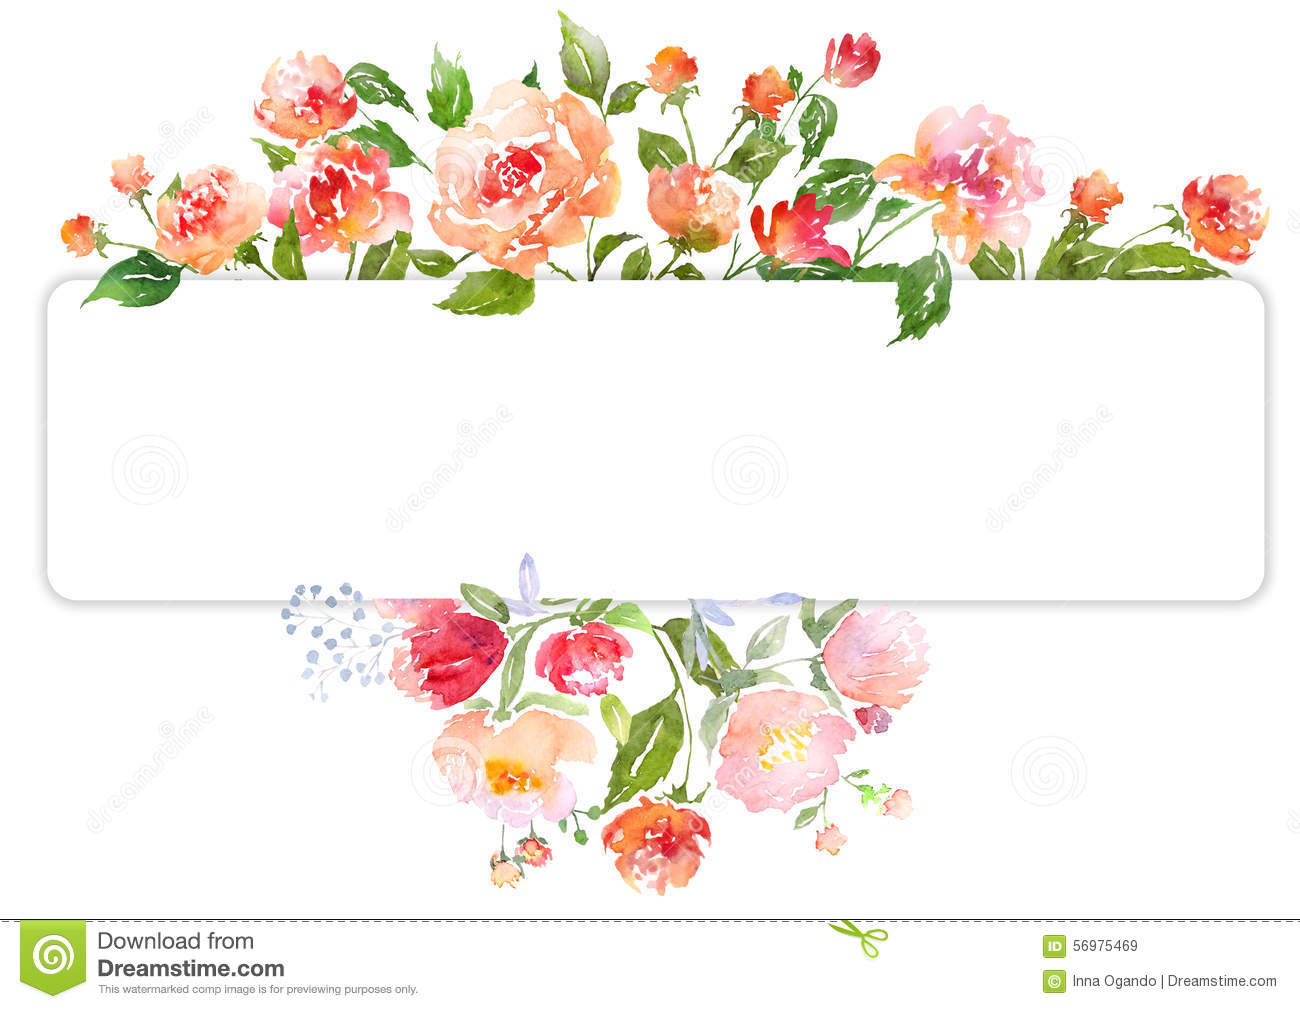 hight resolution of floral clip art with watercolor peonies illustration for greeting cards invitations and other printing projects